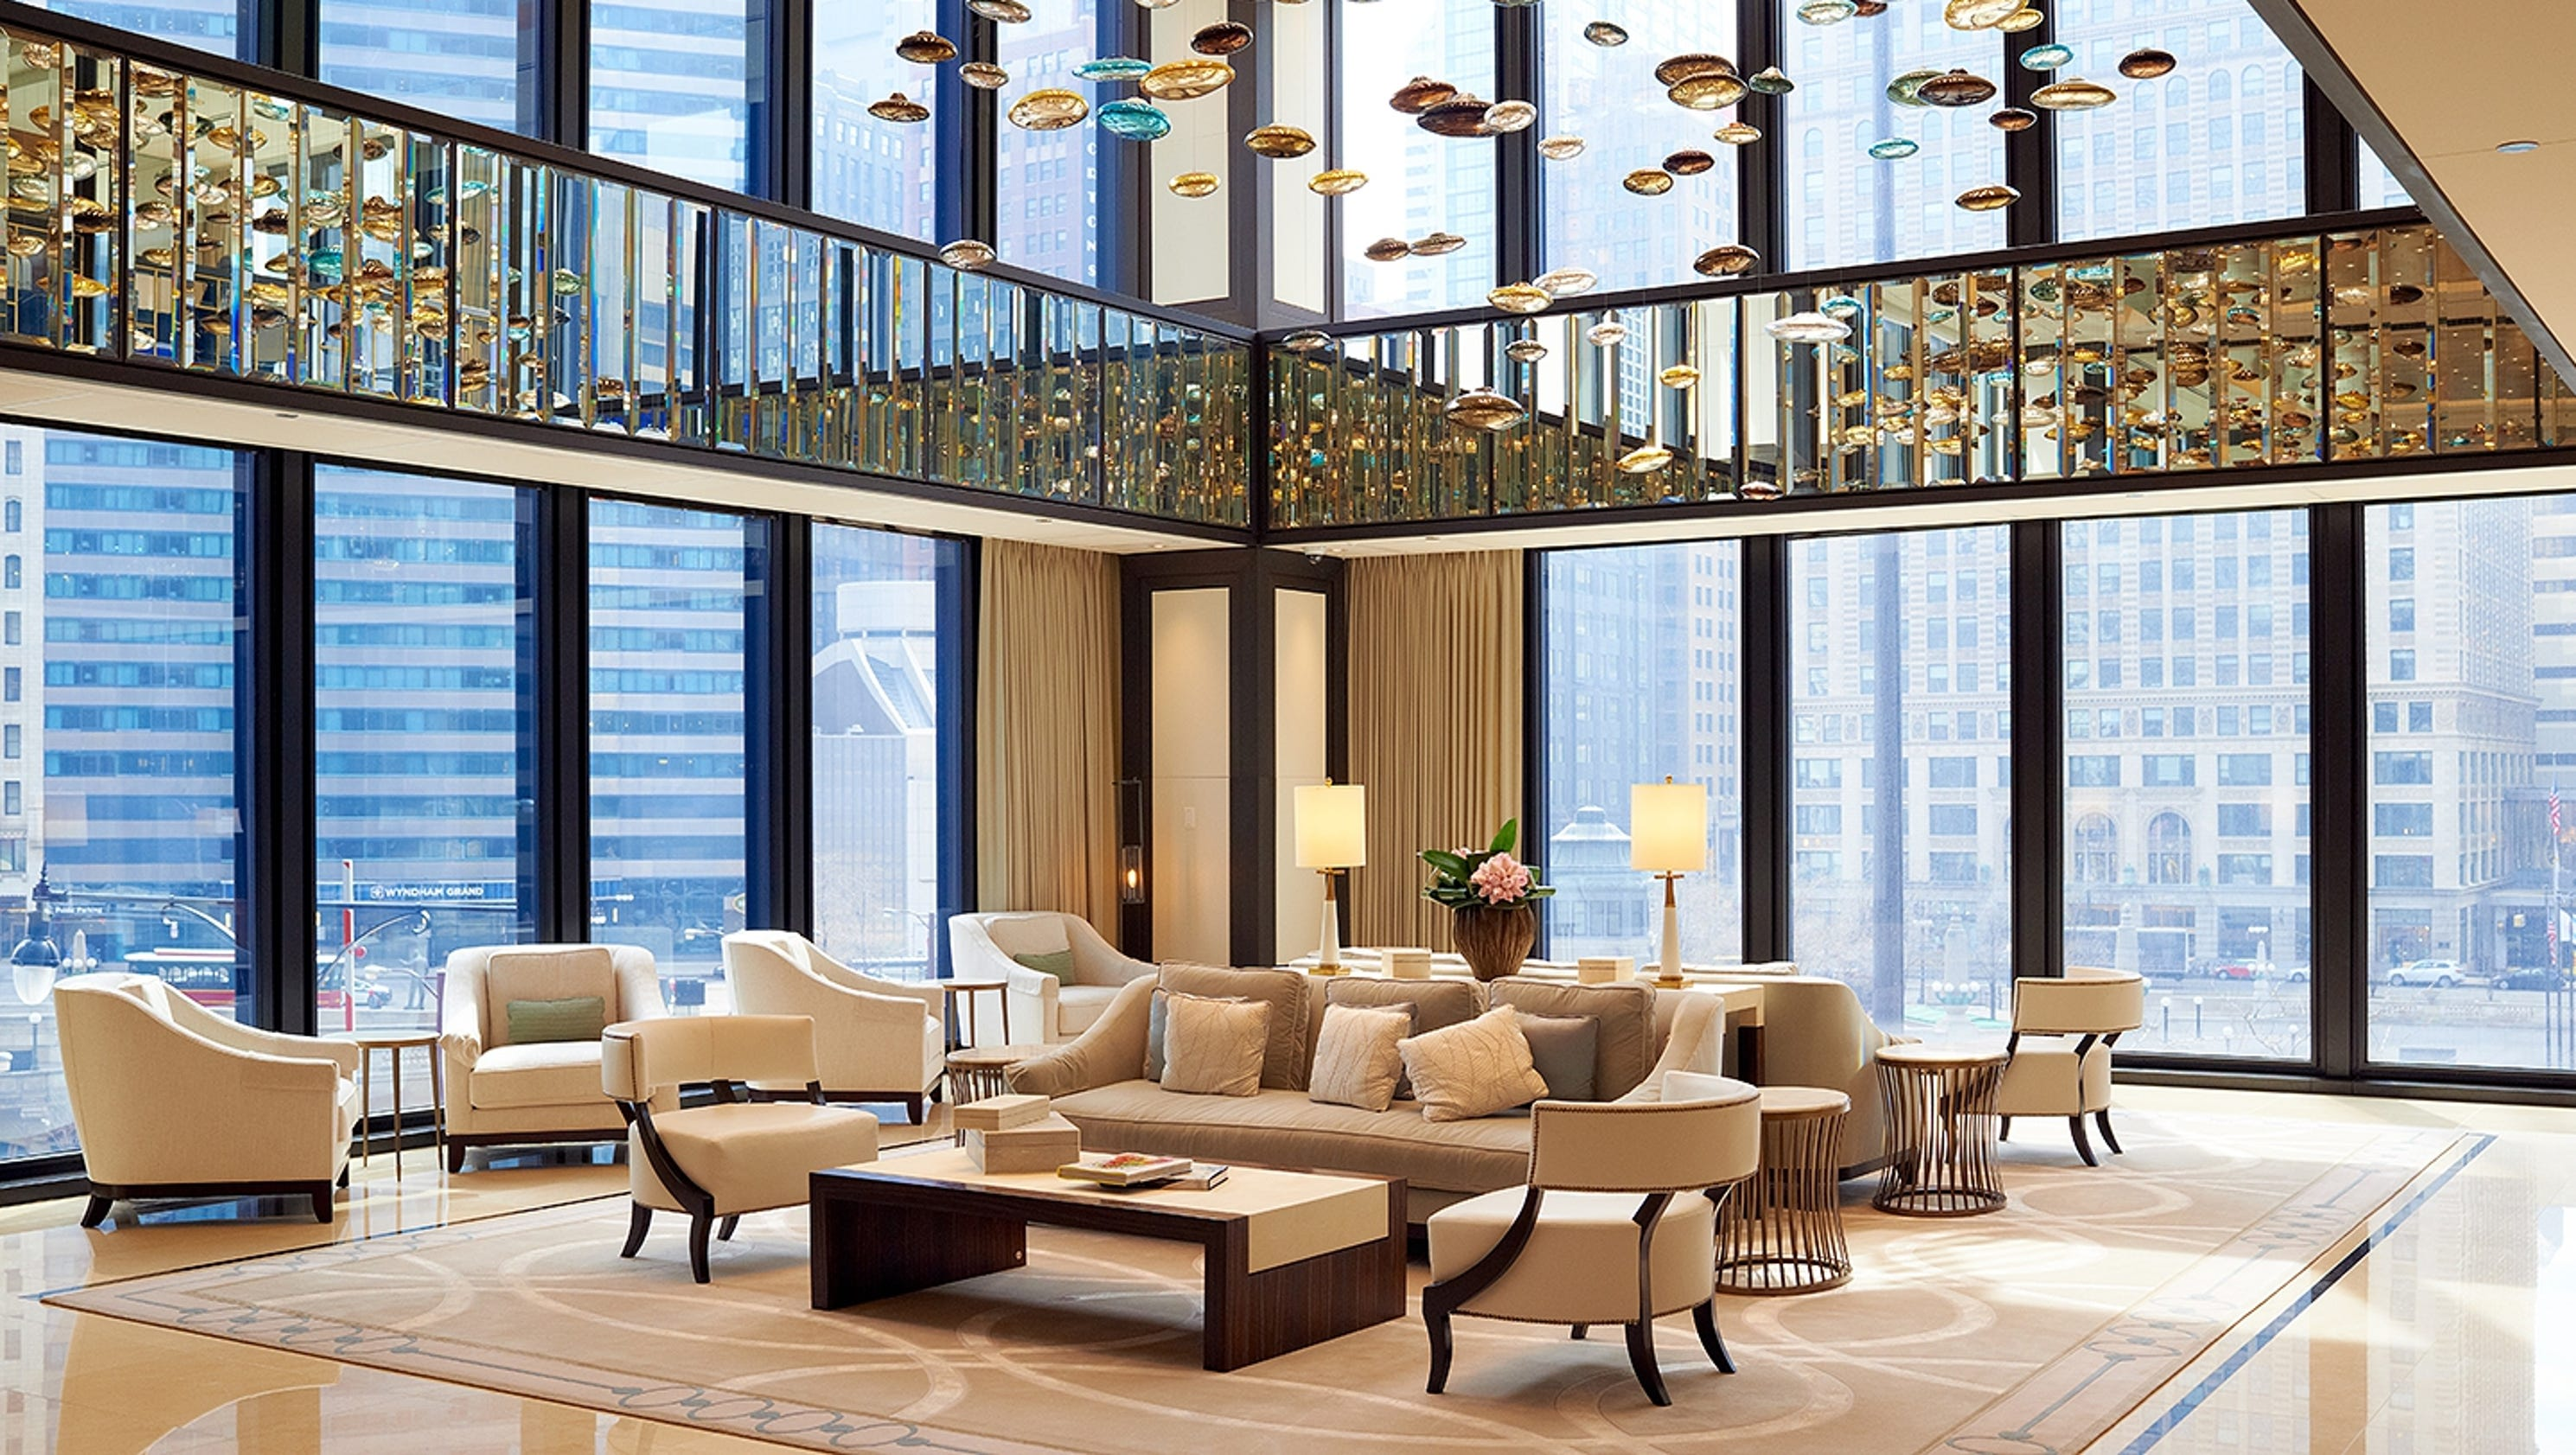 Tripadvisor names the world 39 s top hotels for 2015 for Best hotel in america